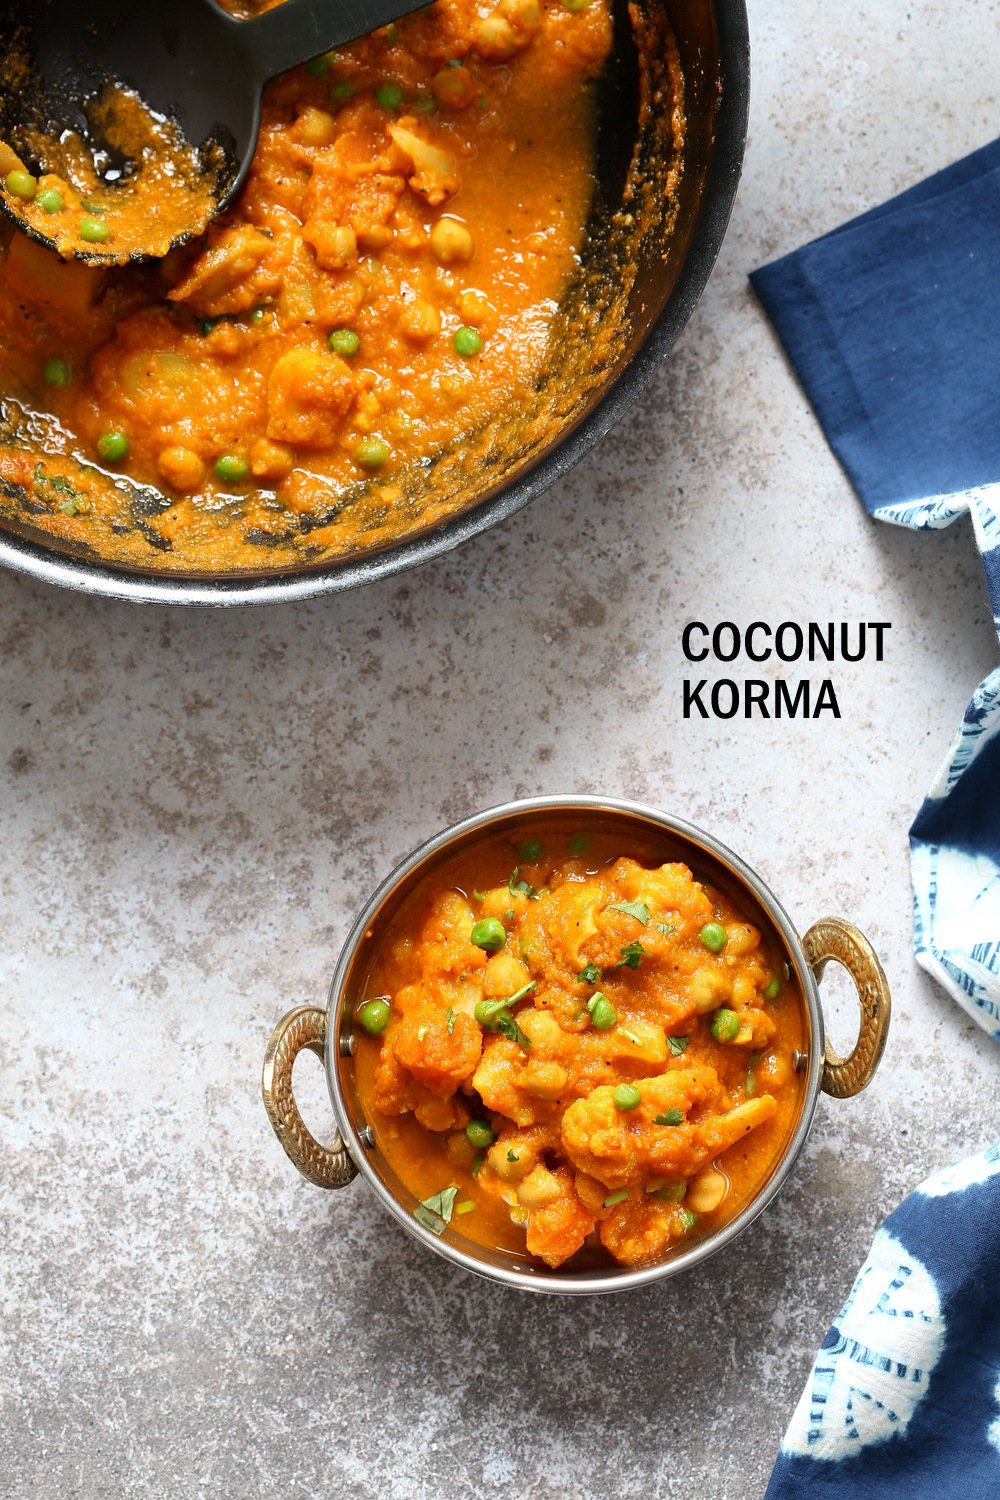 Veggie Kurma - Easy Coconut Korma Sauce with Cauliflower, Potatoes, Carrots, Chickpeas. 1 Pot Vegetable Korma #Vegan #Glutenfree #Soyfree #Nutfree #Recipe #veganricha